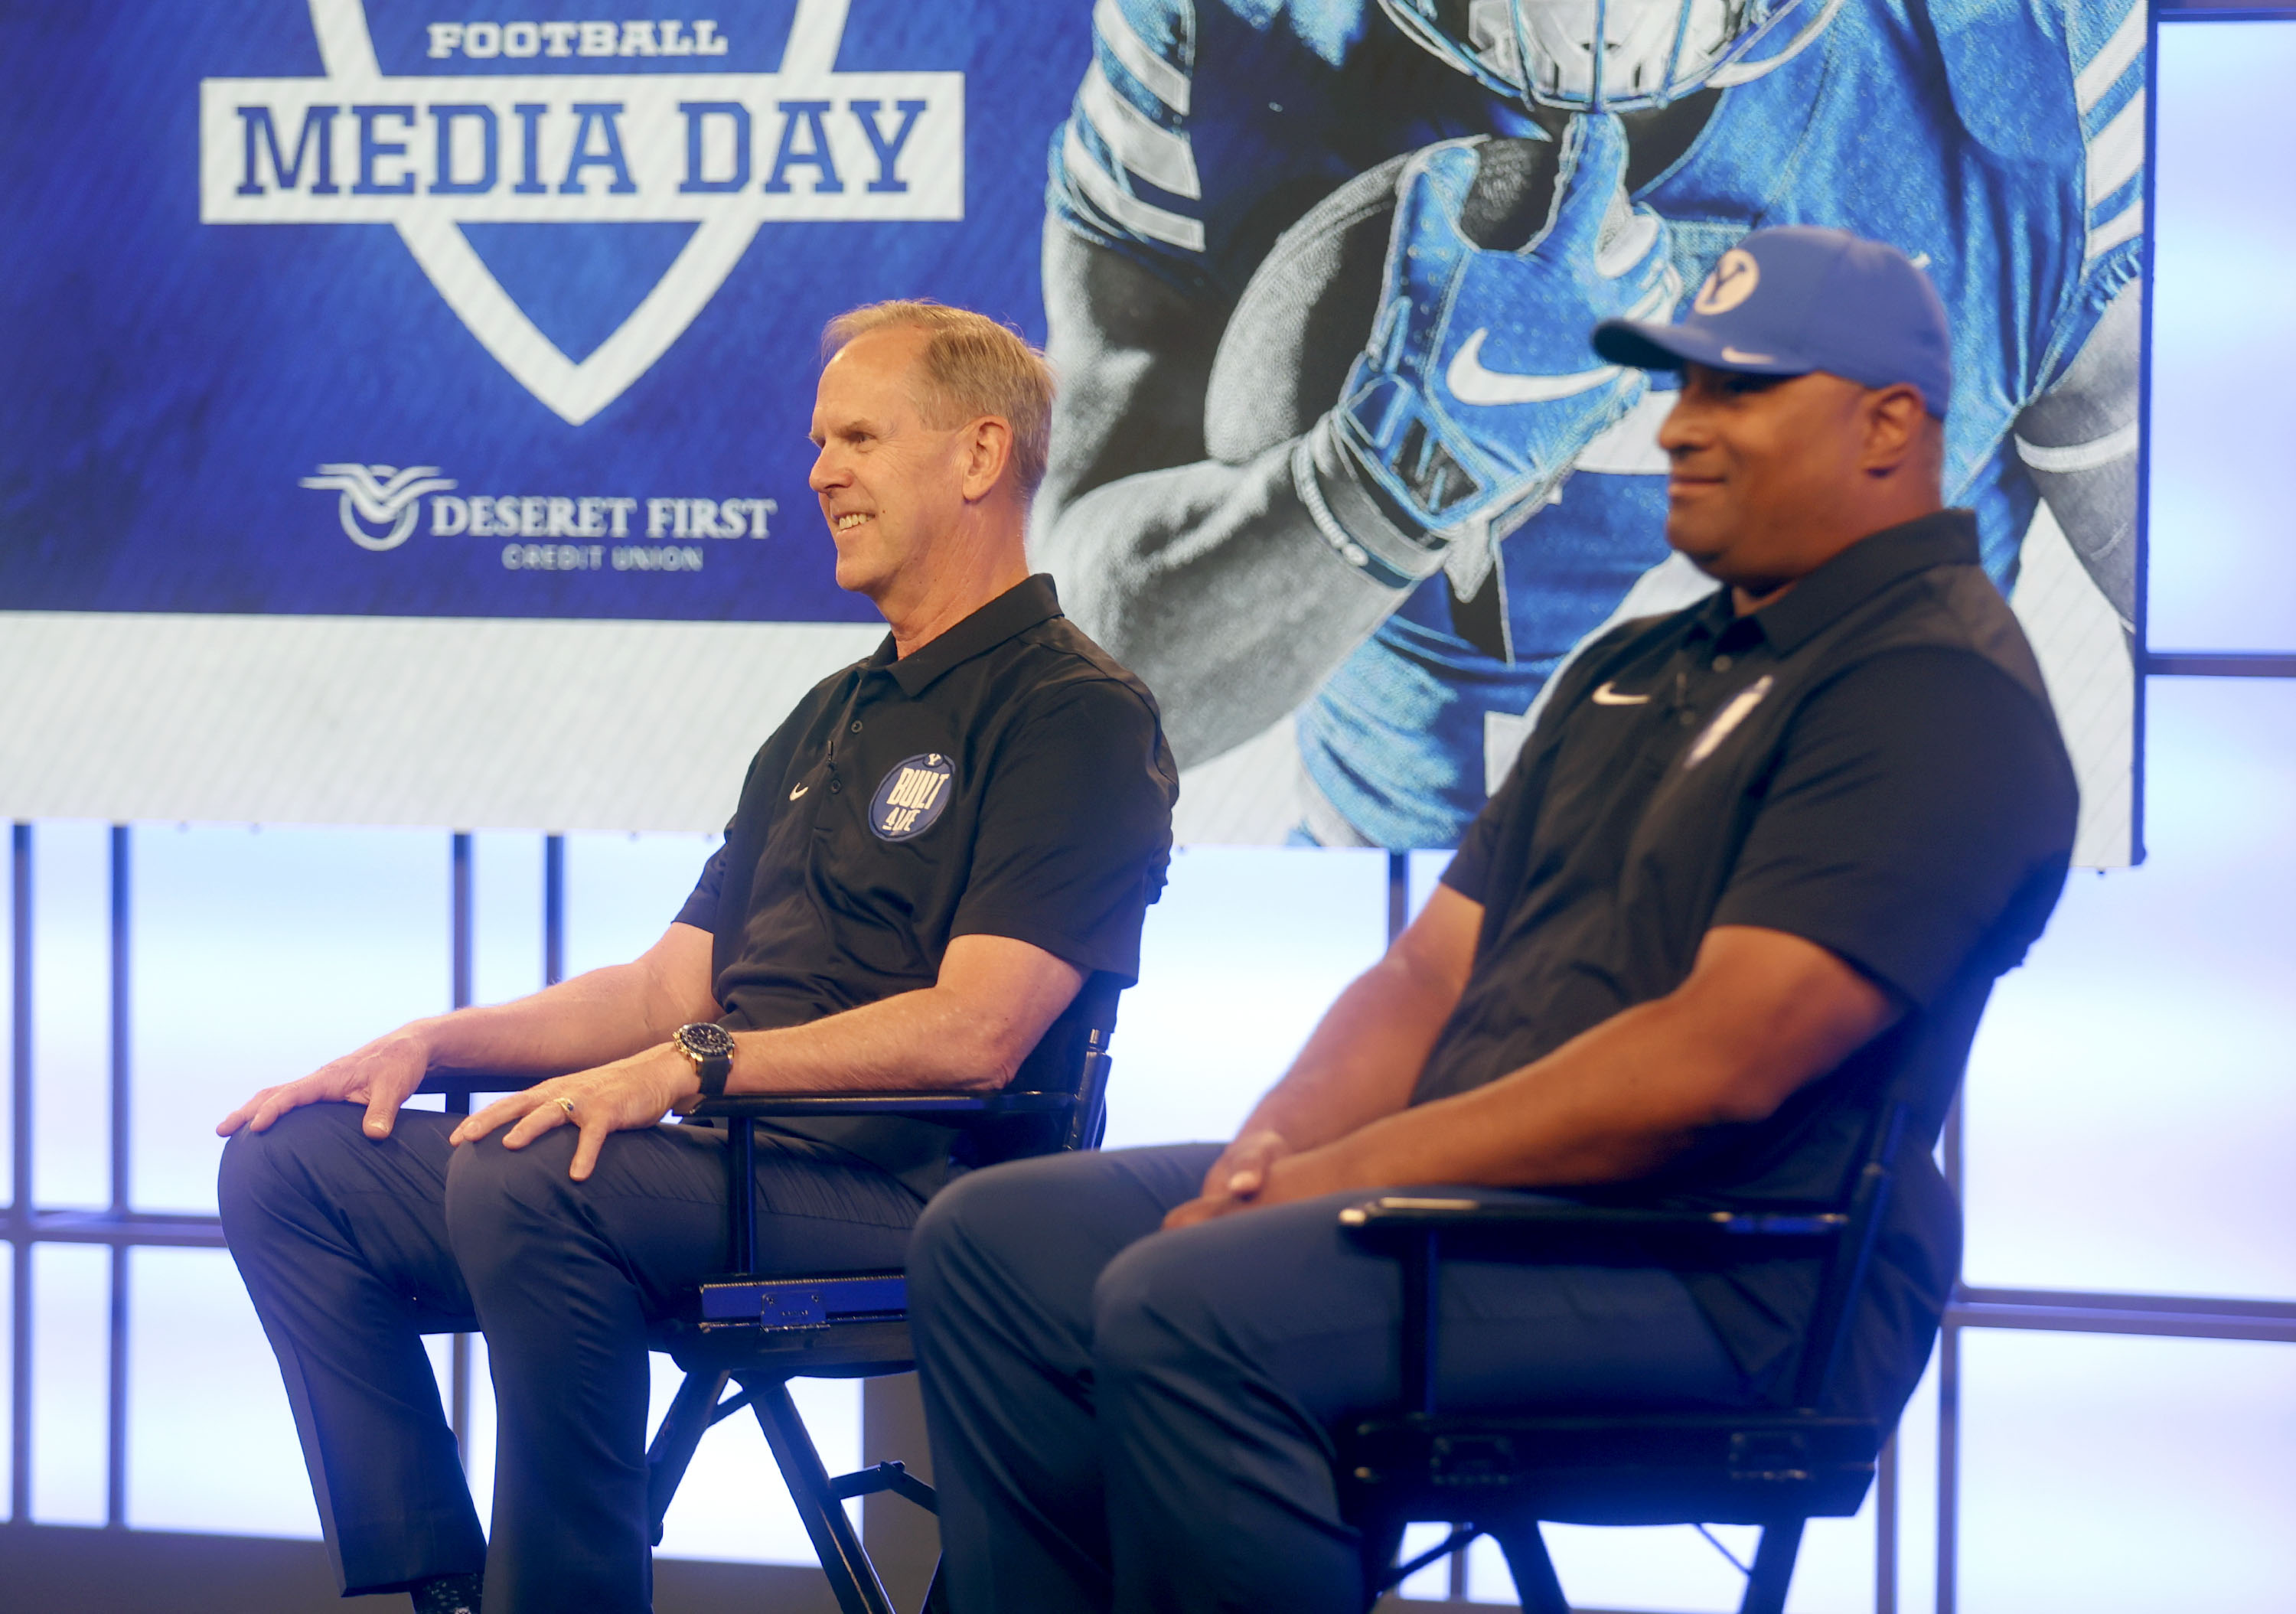 BYU athletic director Tom Holmoe and football coach Kalani Sitake answer questions during BYU football media day in Provo.